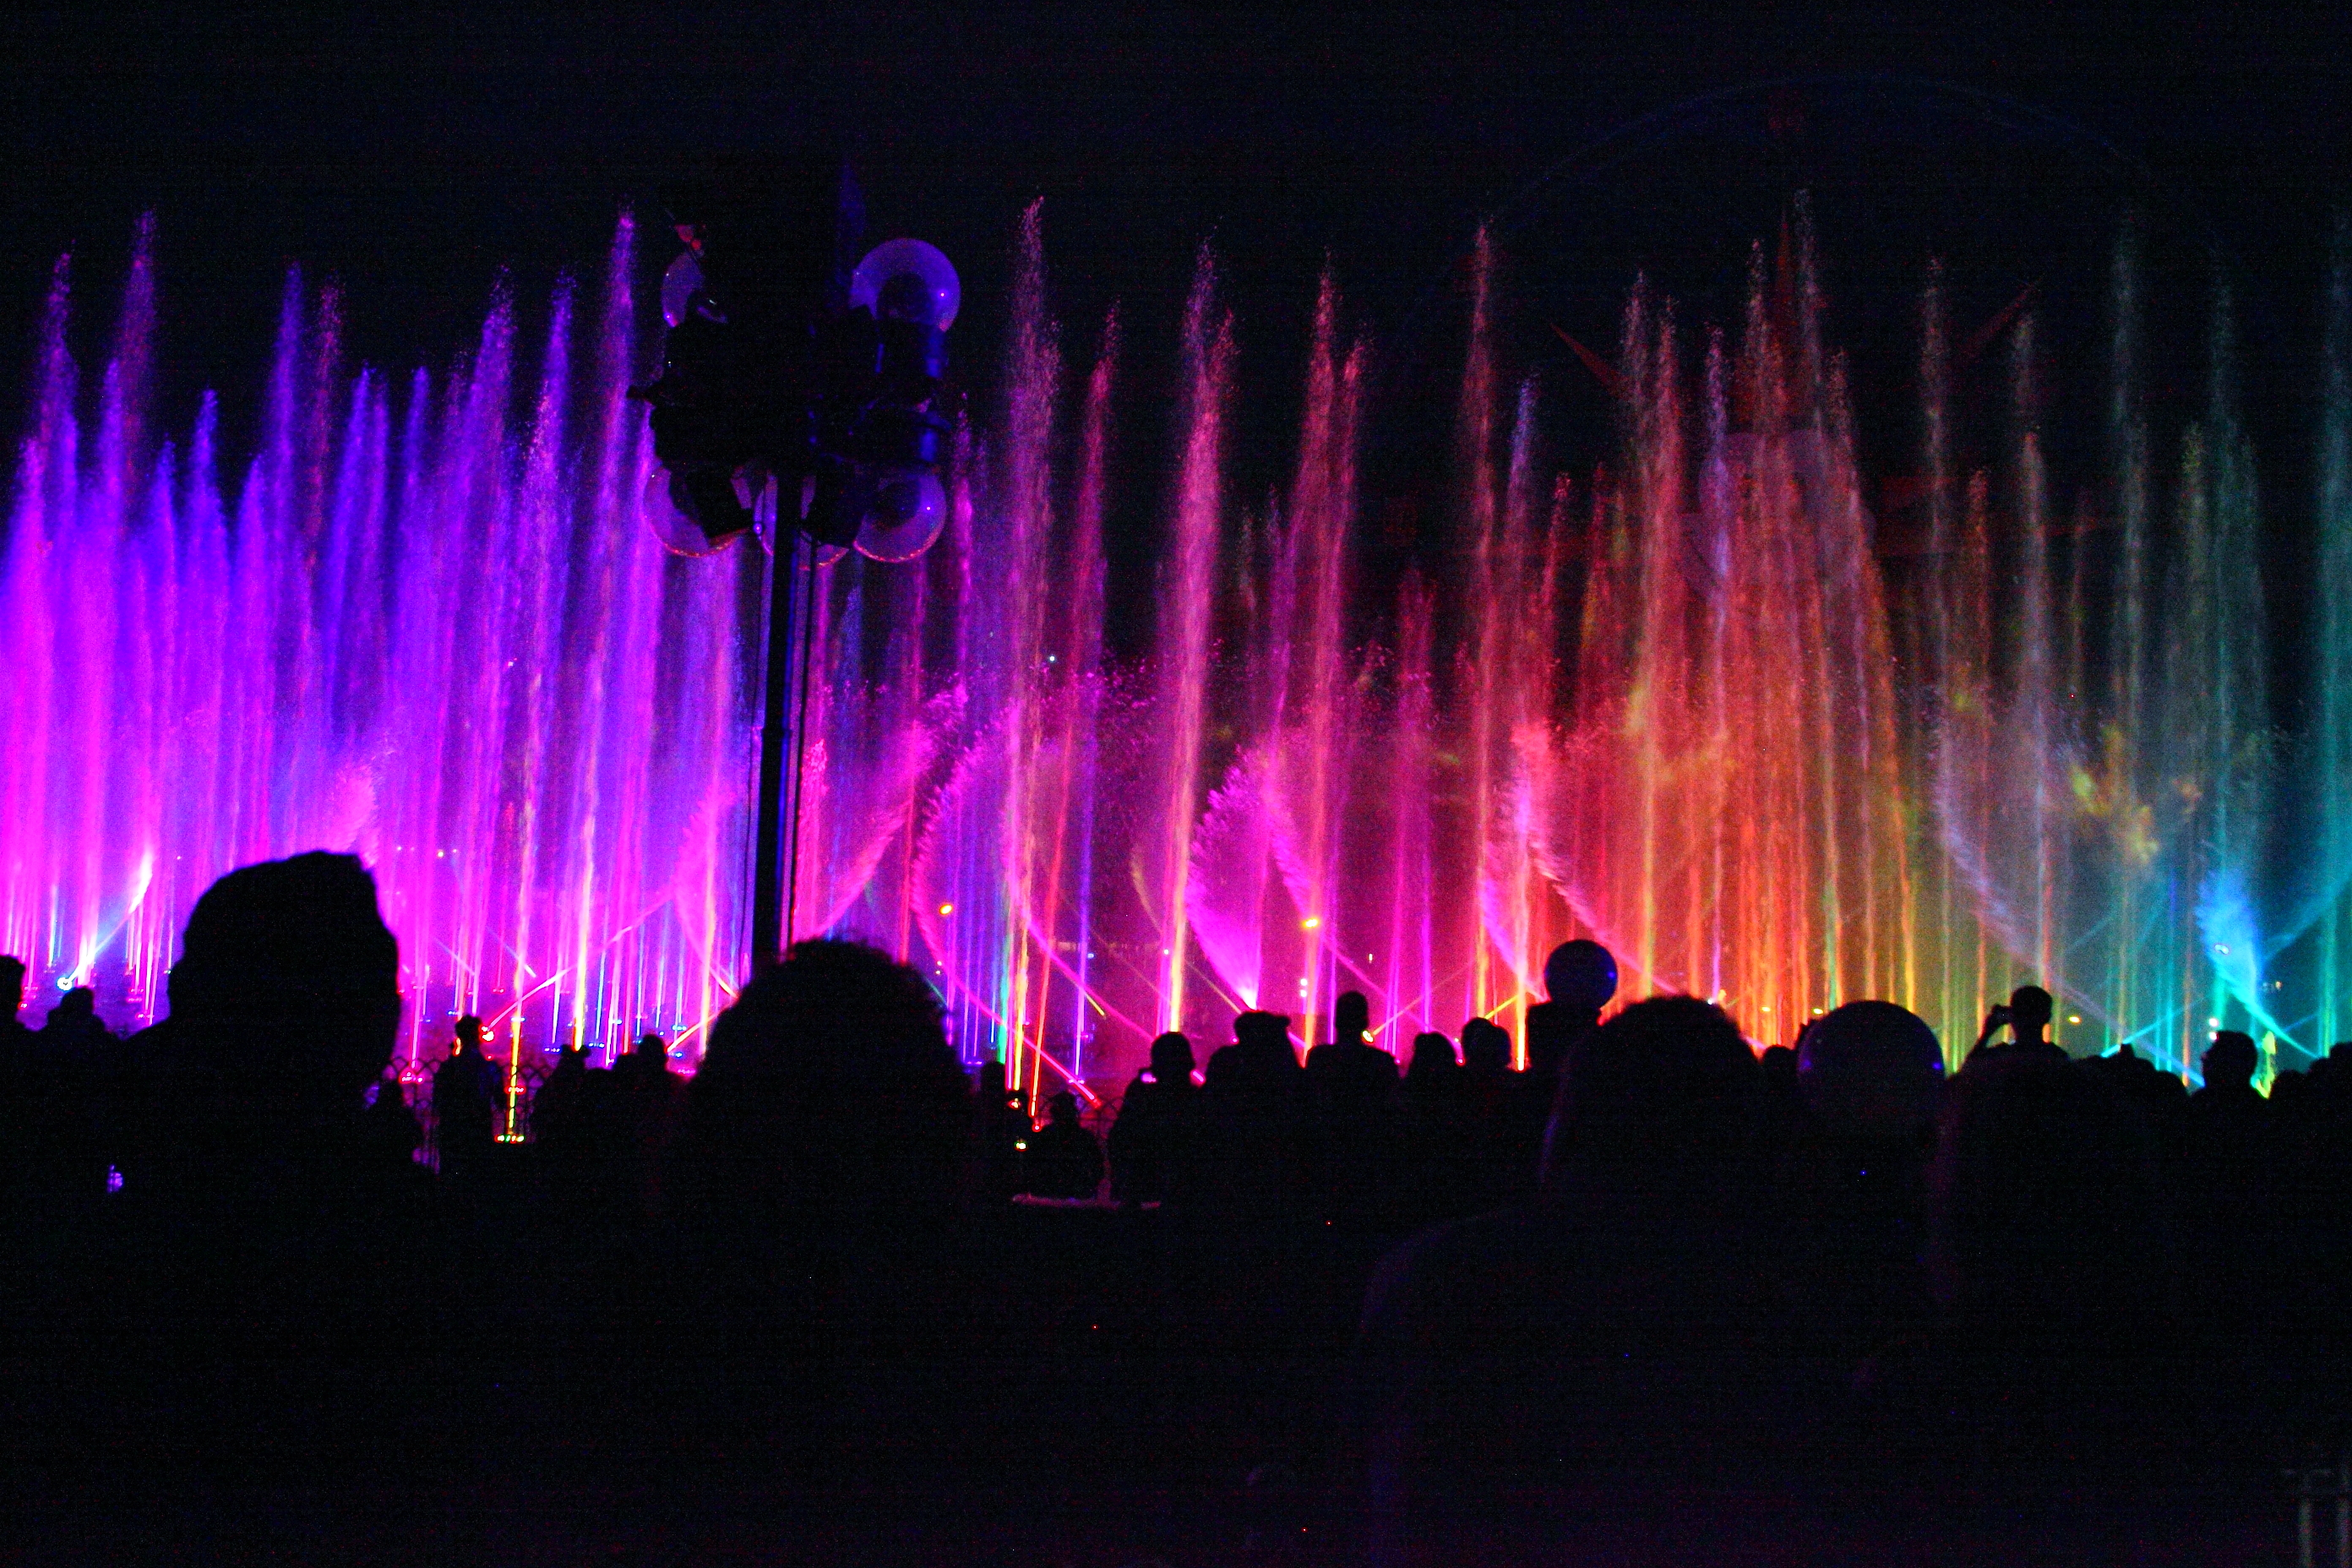 The Opening Night Adventure ended with reserved seating for World of Color